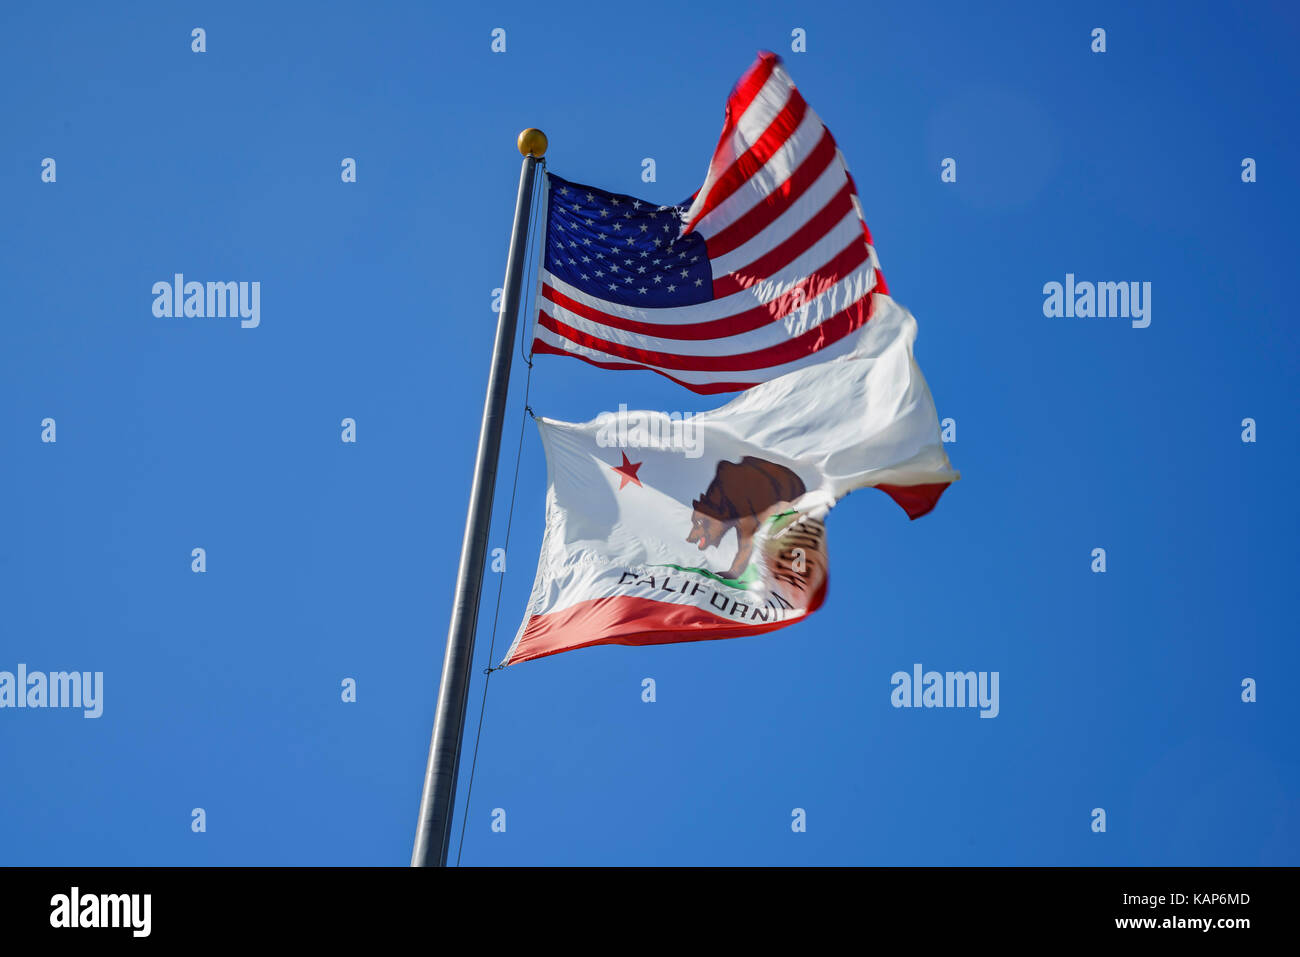 The American and California flag fluttering, photo taken at Santa Monica, Los Angeles County, California, United - Stock Image